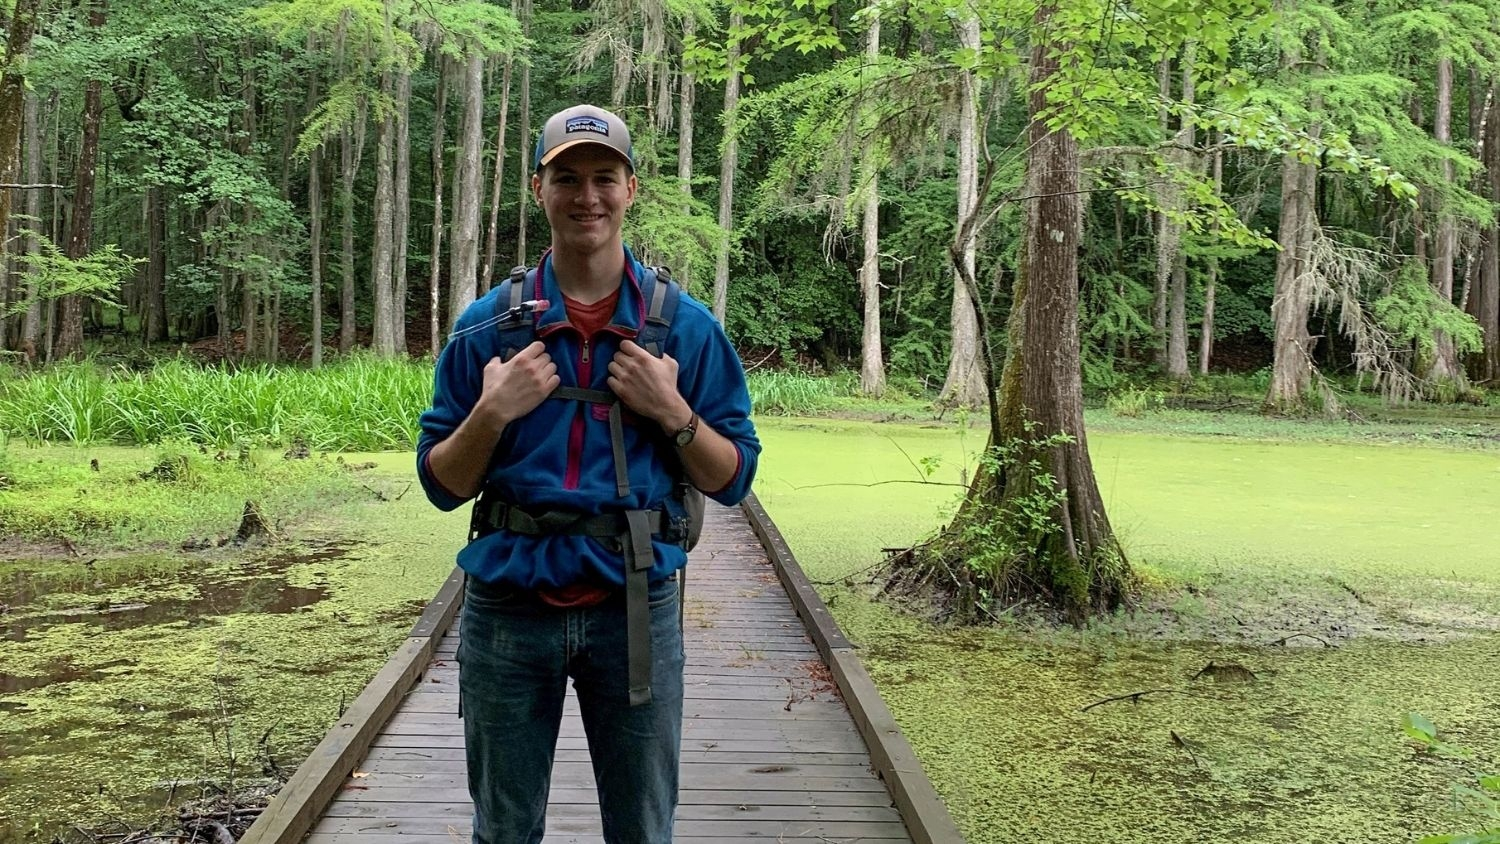 Melzer Morgan Outdoors - Not Your Average Summer: Investigating Wood Products Challenges - College of Natural Resources at NCState University